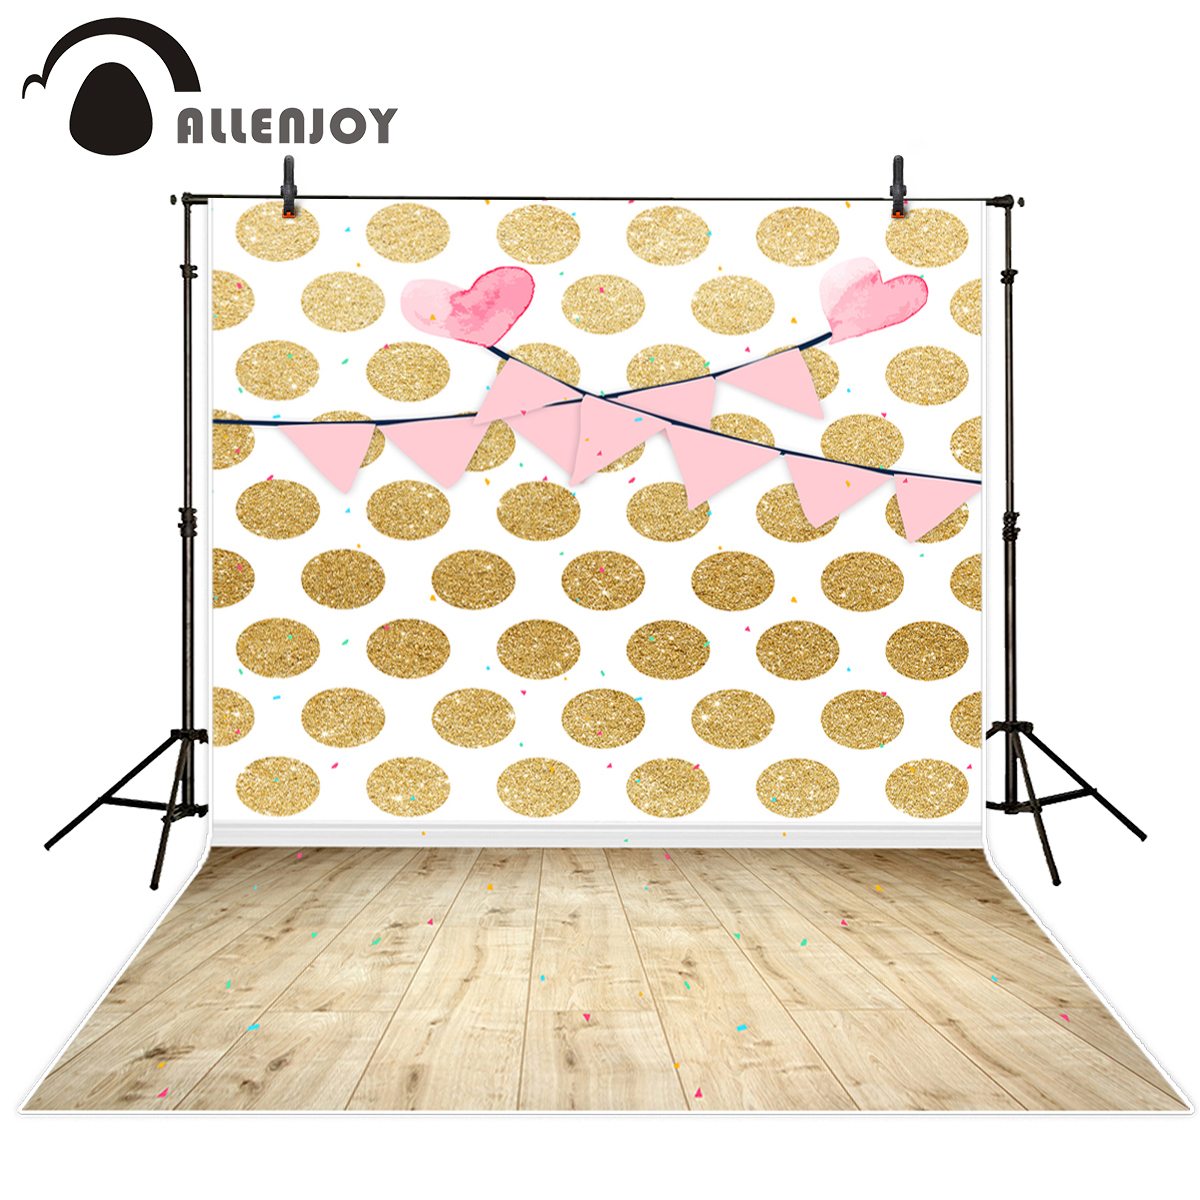 Allenjoy photography backdrops golden Dots pink banners Repeat Ribbon Wedding Party For a photo shoot background for studio